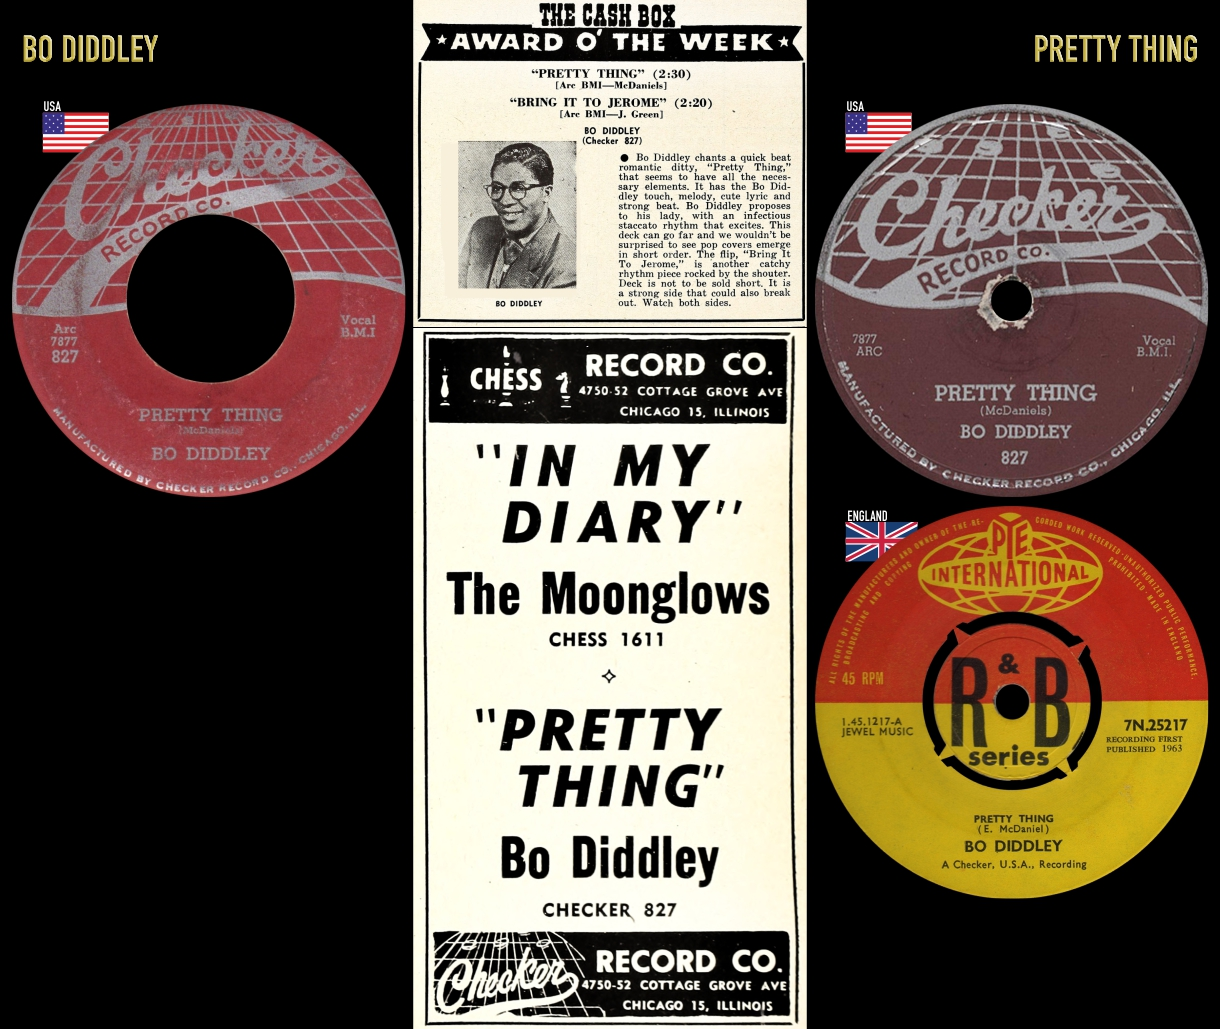 560107_Bo-Diddley_Pretty-Thing